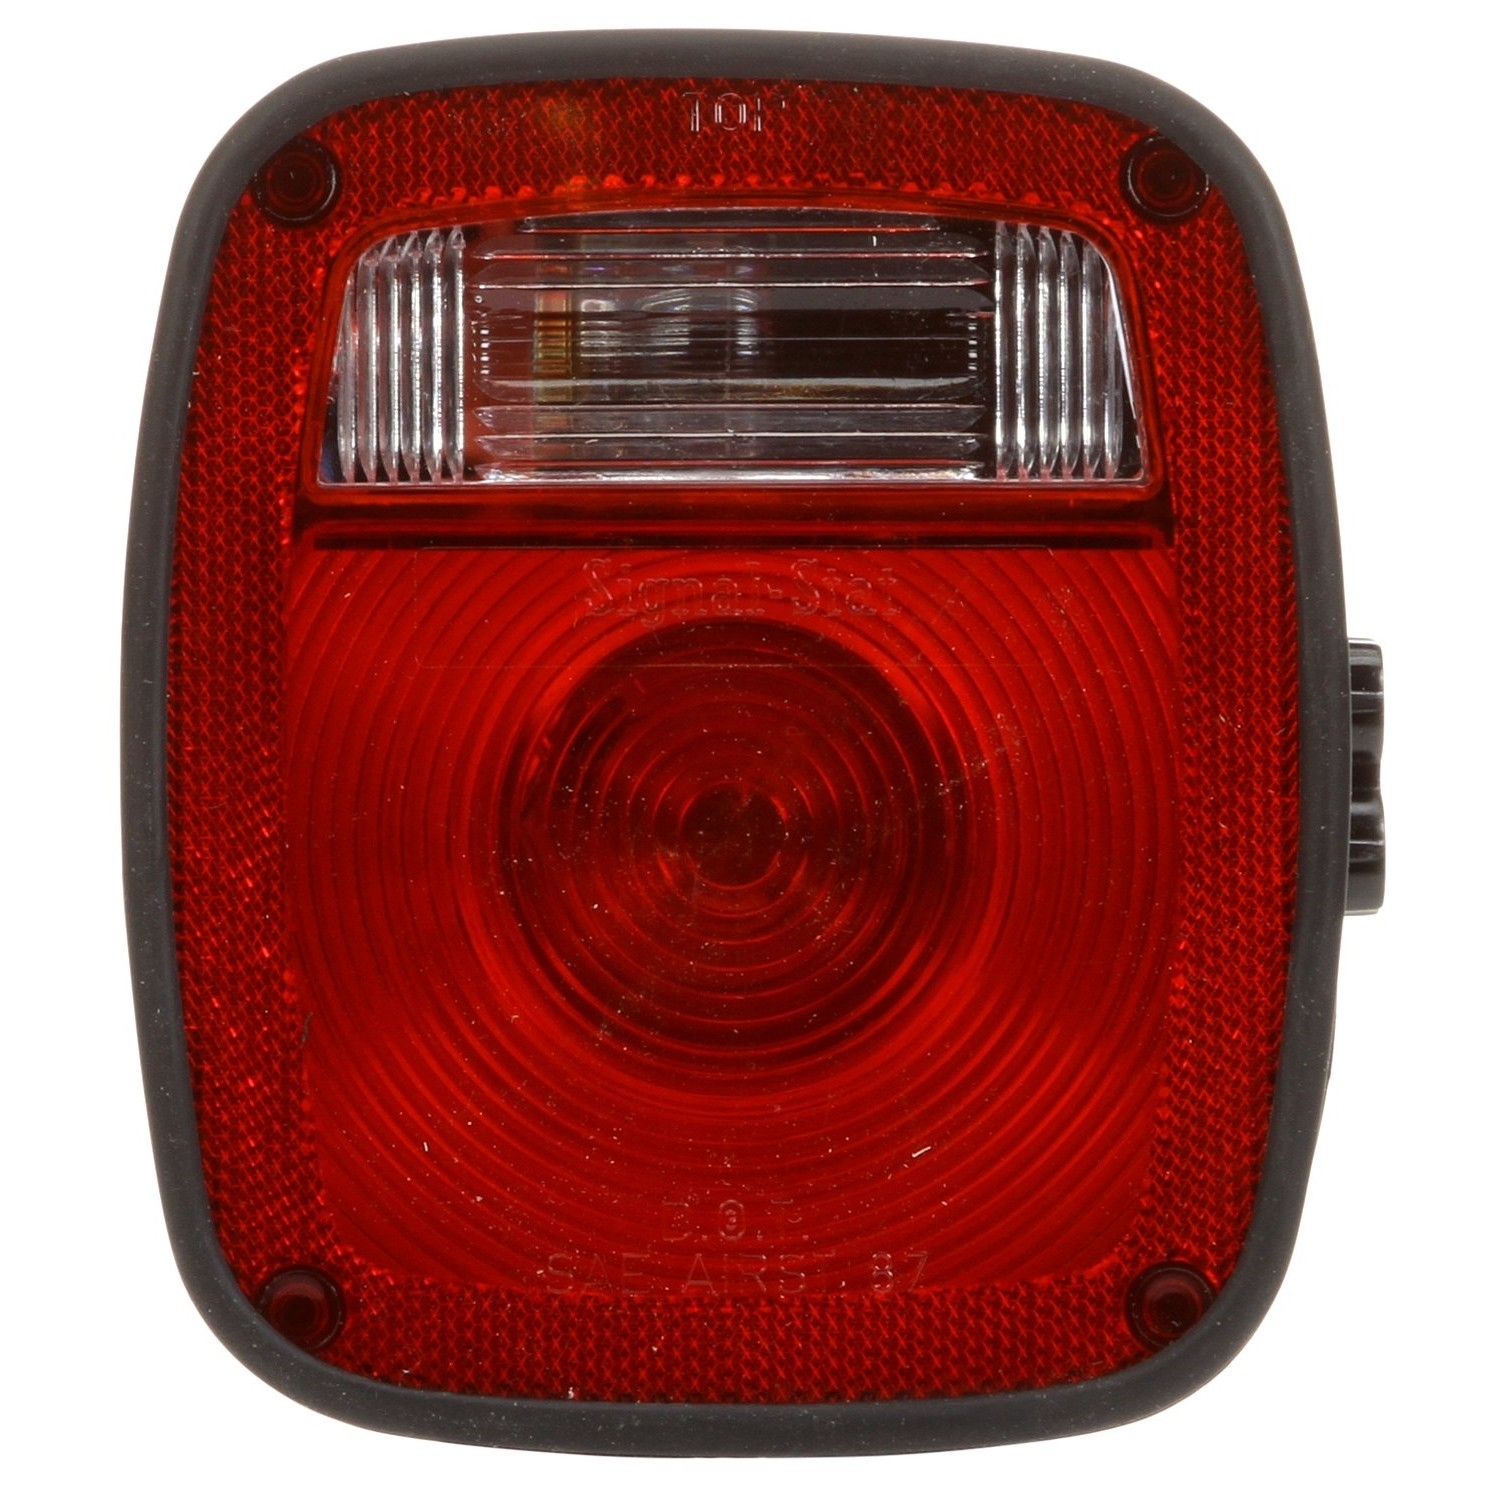 Tail and Brake Light Grote Led Wiring Diagram Volvo Truck Tail Light Left Side Stop Tail Turn Of Tail and Brake Light Grote Led Wiring Diagram